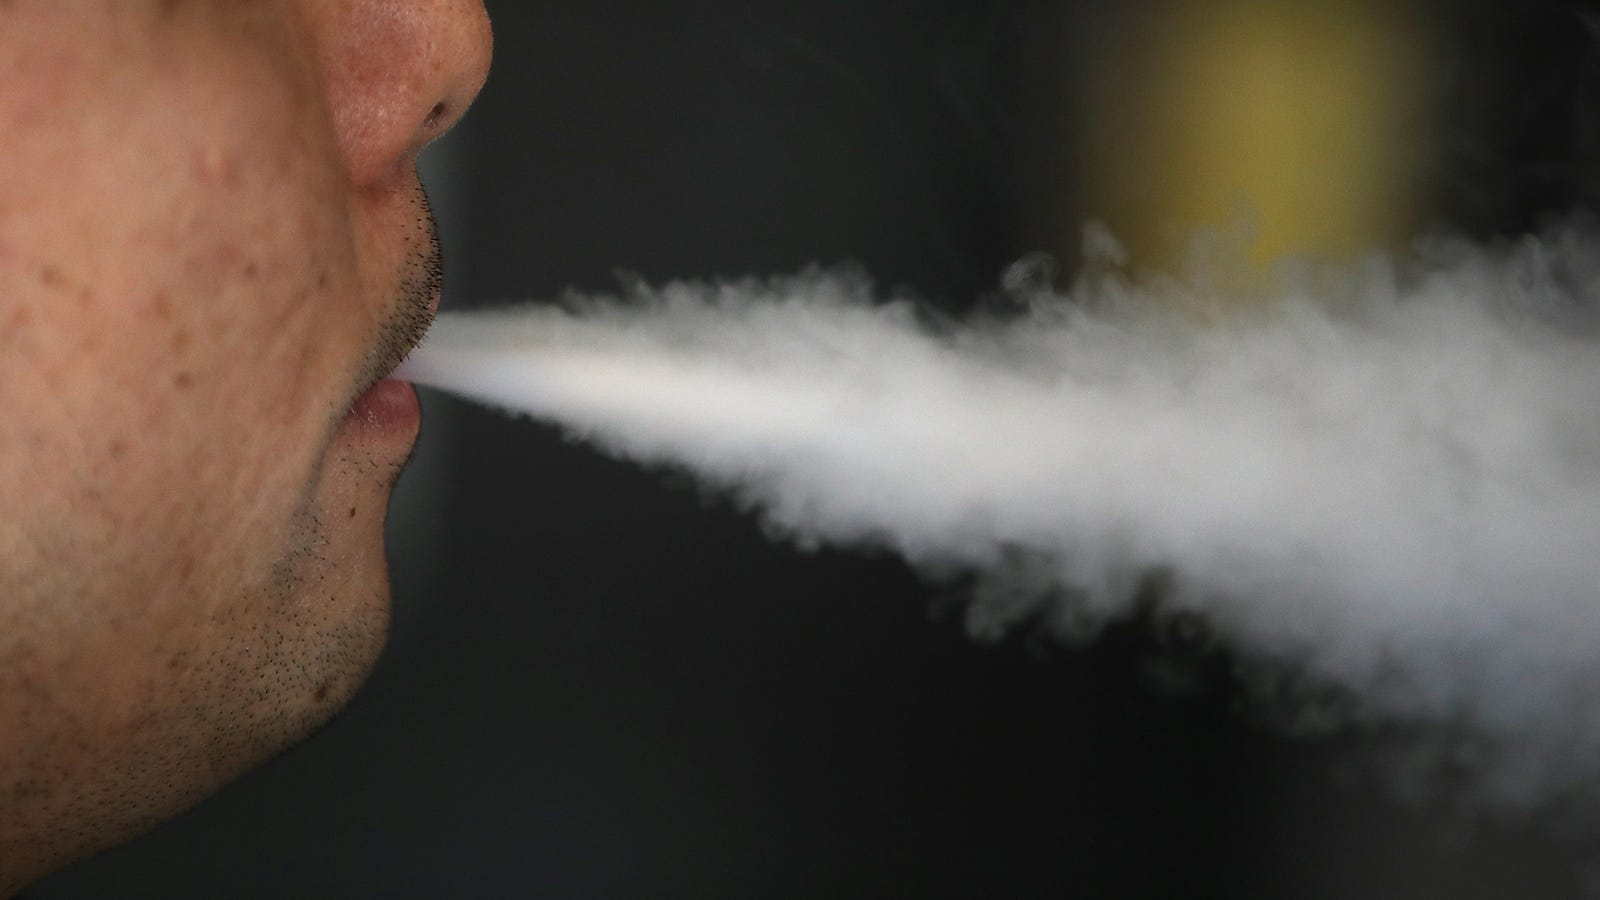 Vape Pen Explosion Kills Florida Man, Police Say